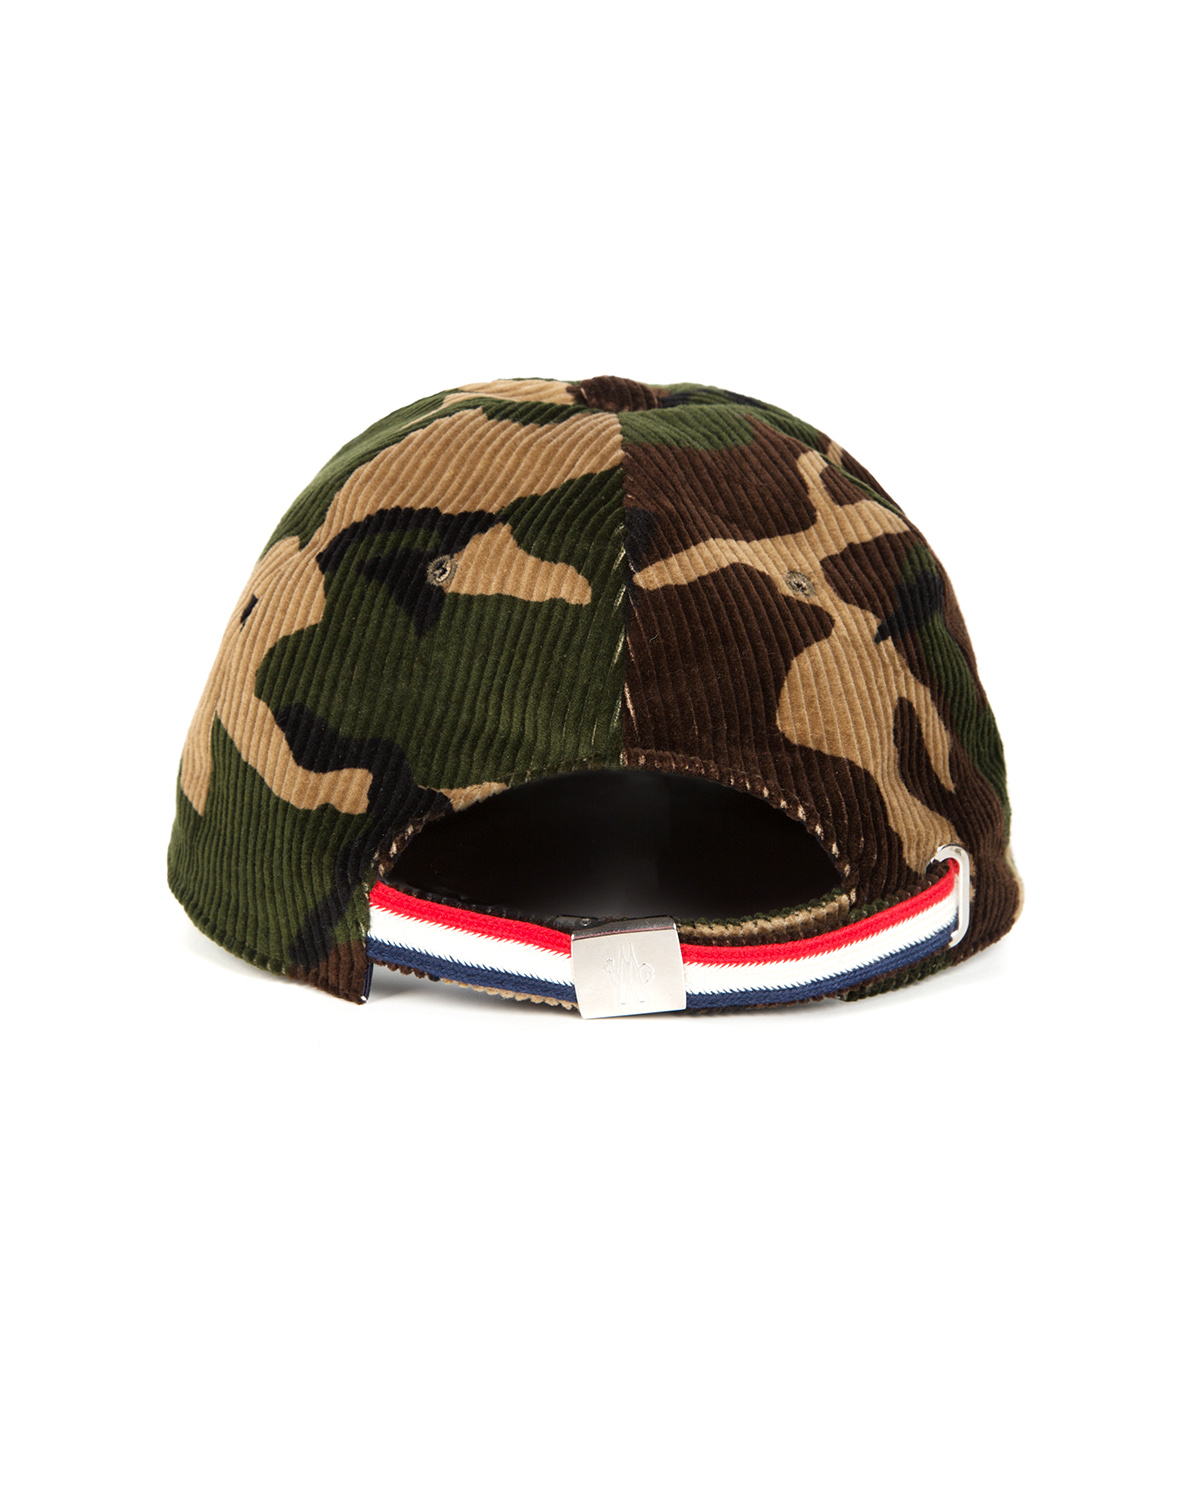 5897216d500 Moncler Men s Velvet Baseball Cap Camo Green 86310 2 - Linea Fashion